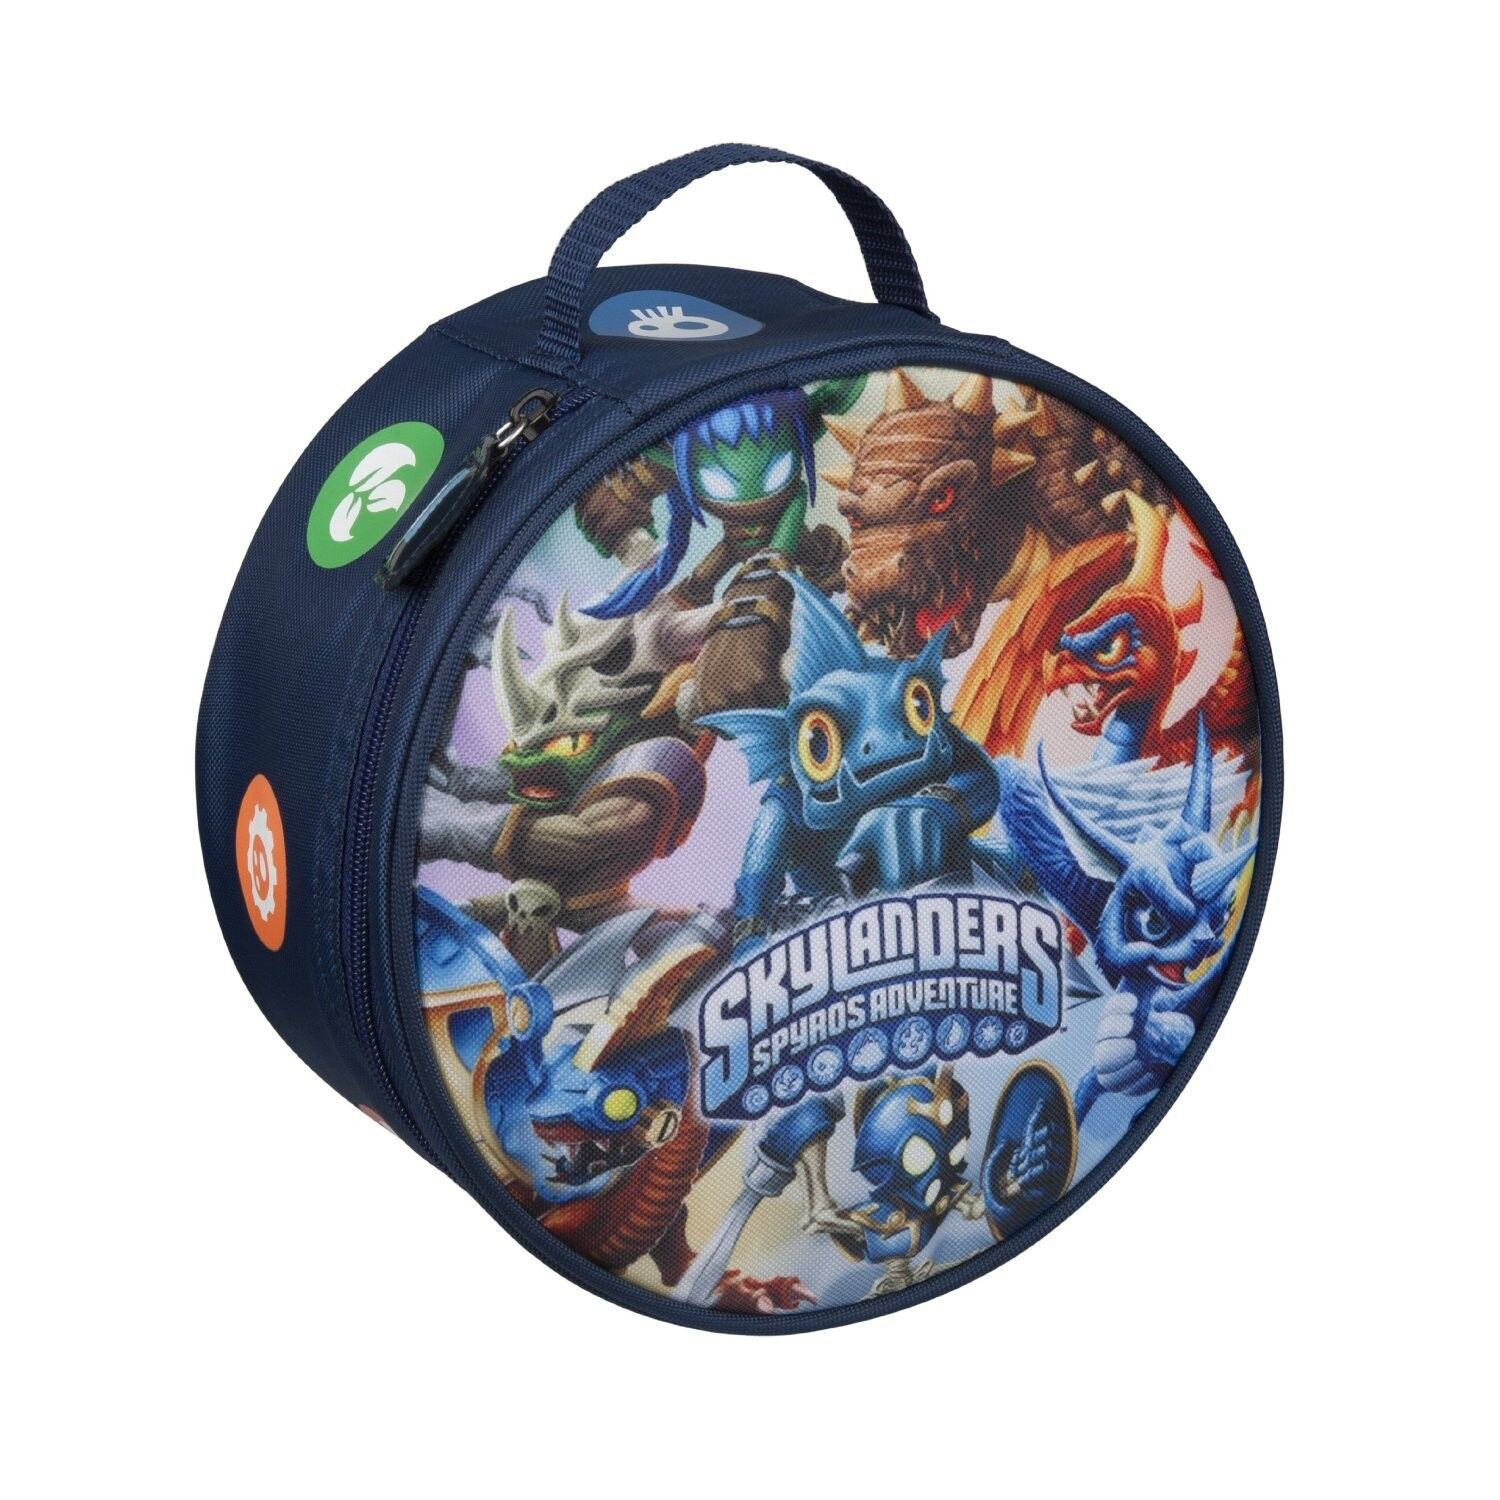 new skylanders spyros adventure zip case carrying bag fits 8 figures